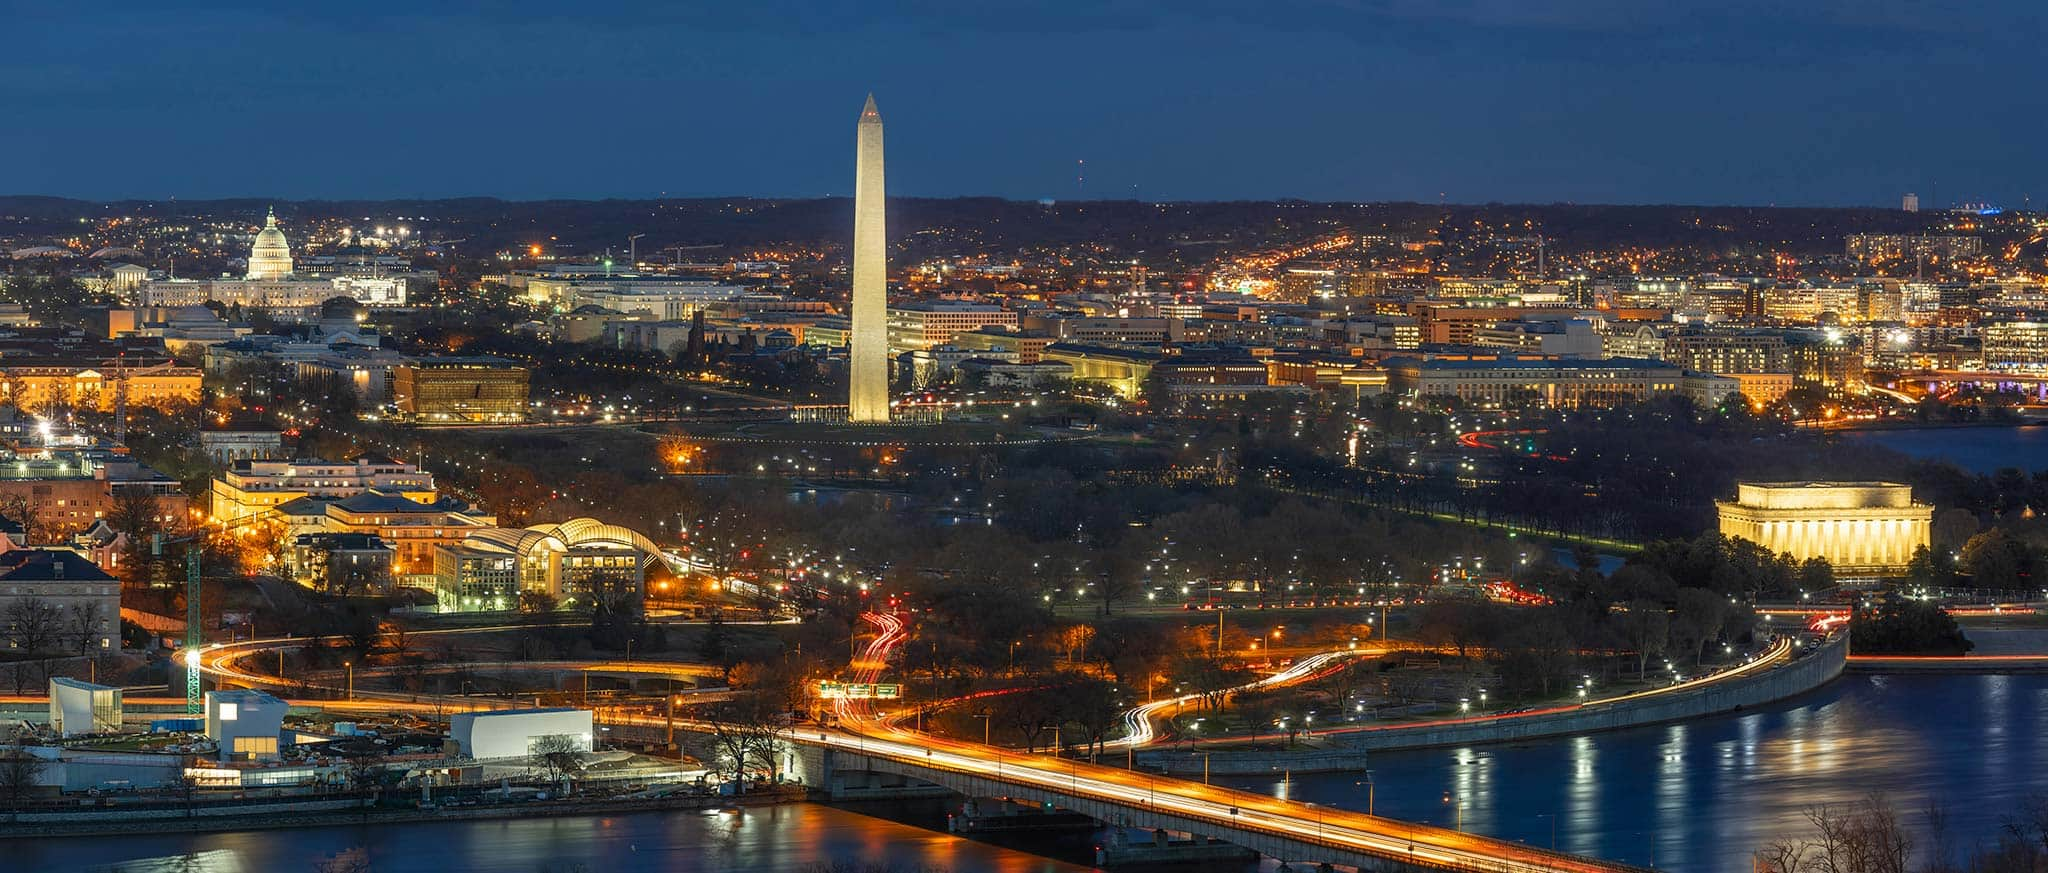 An aerial view of Washington DC at night